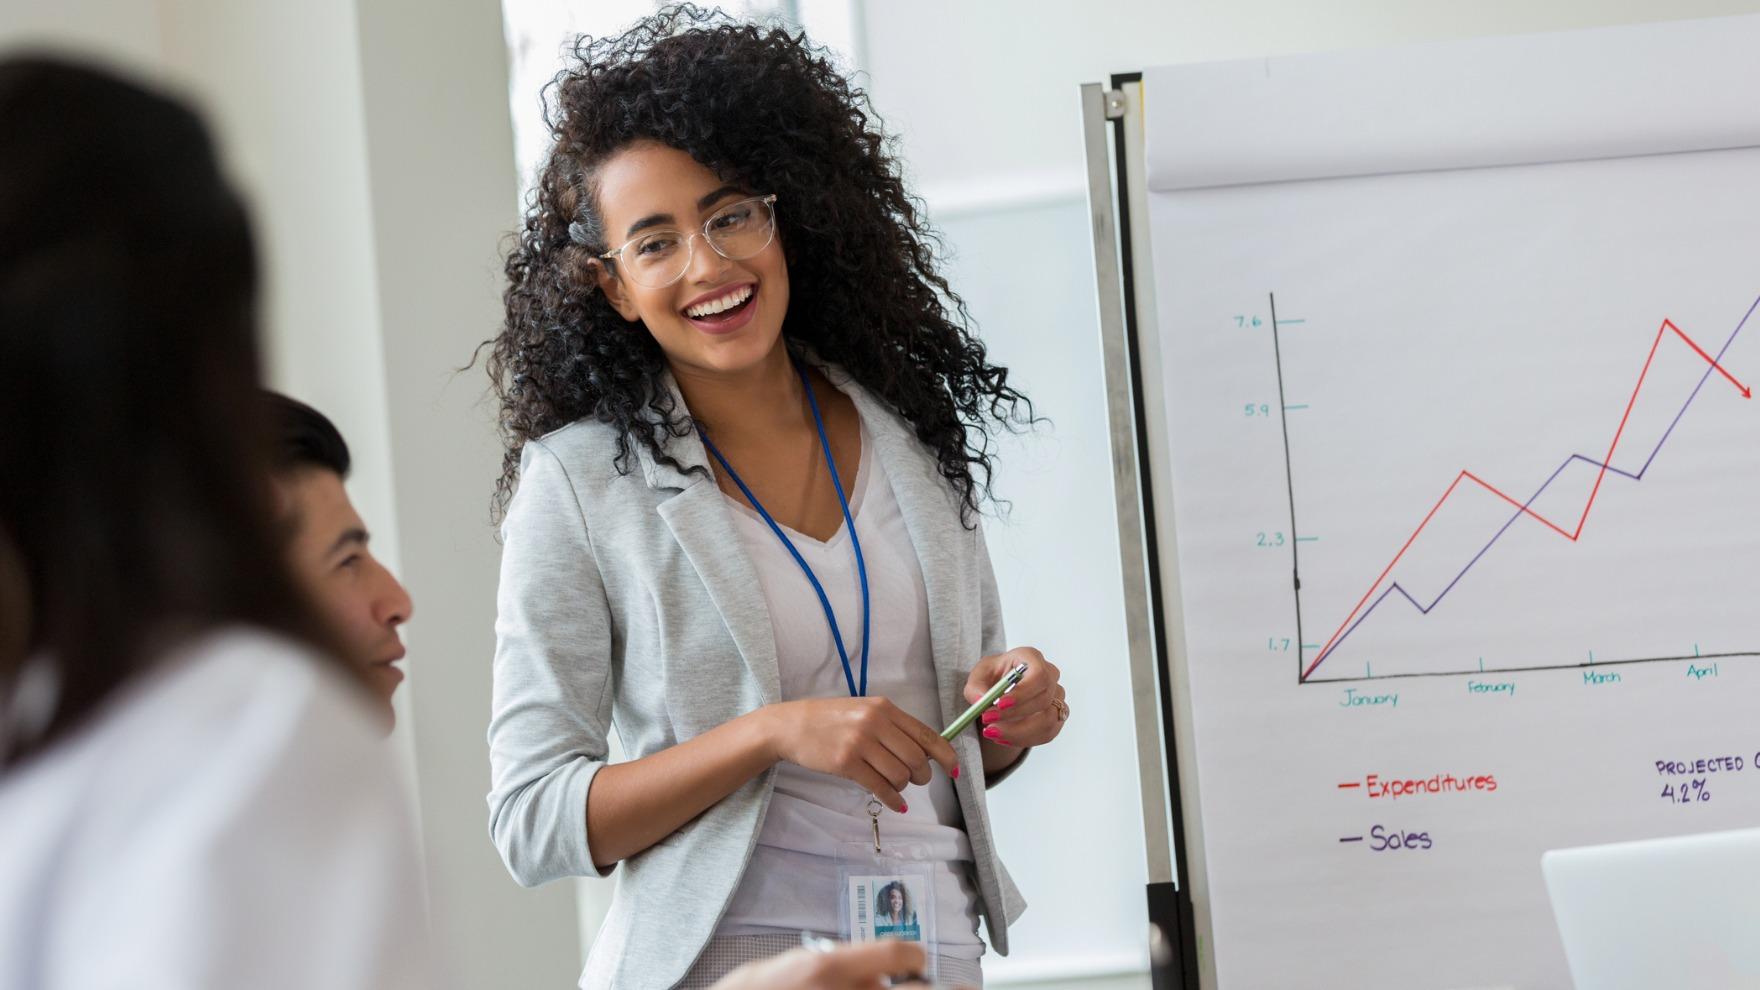 The 22 Sales Skills You Need to Advance Your Career